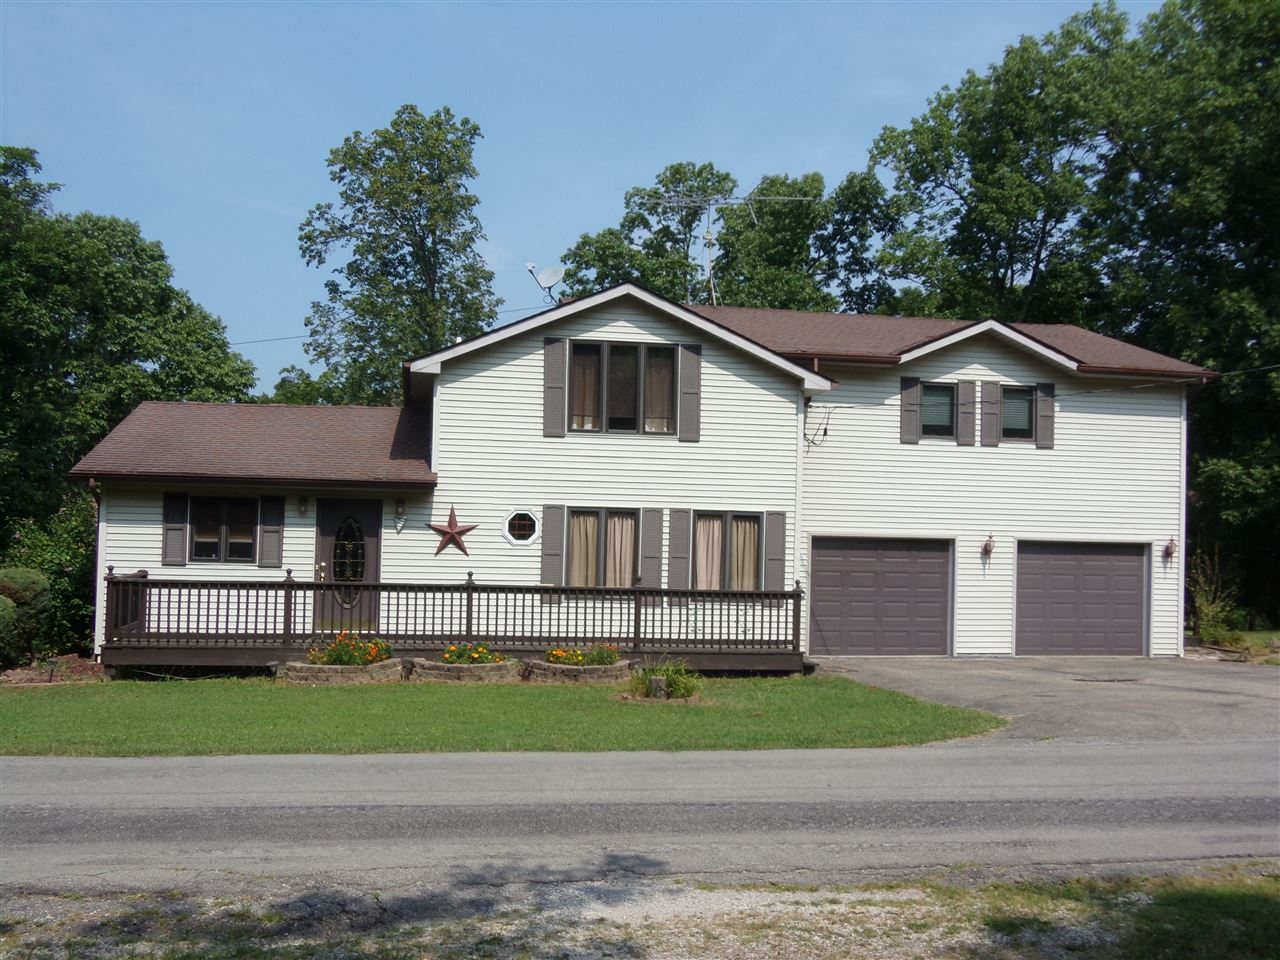 1160 Cave Heights Lane, FALLS OF ROUGH, KY 40119